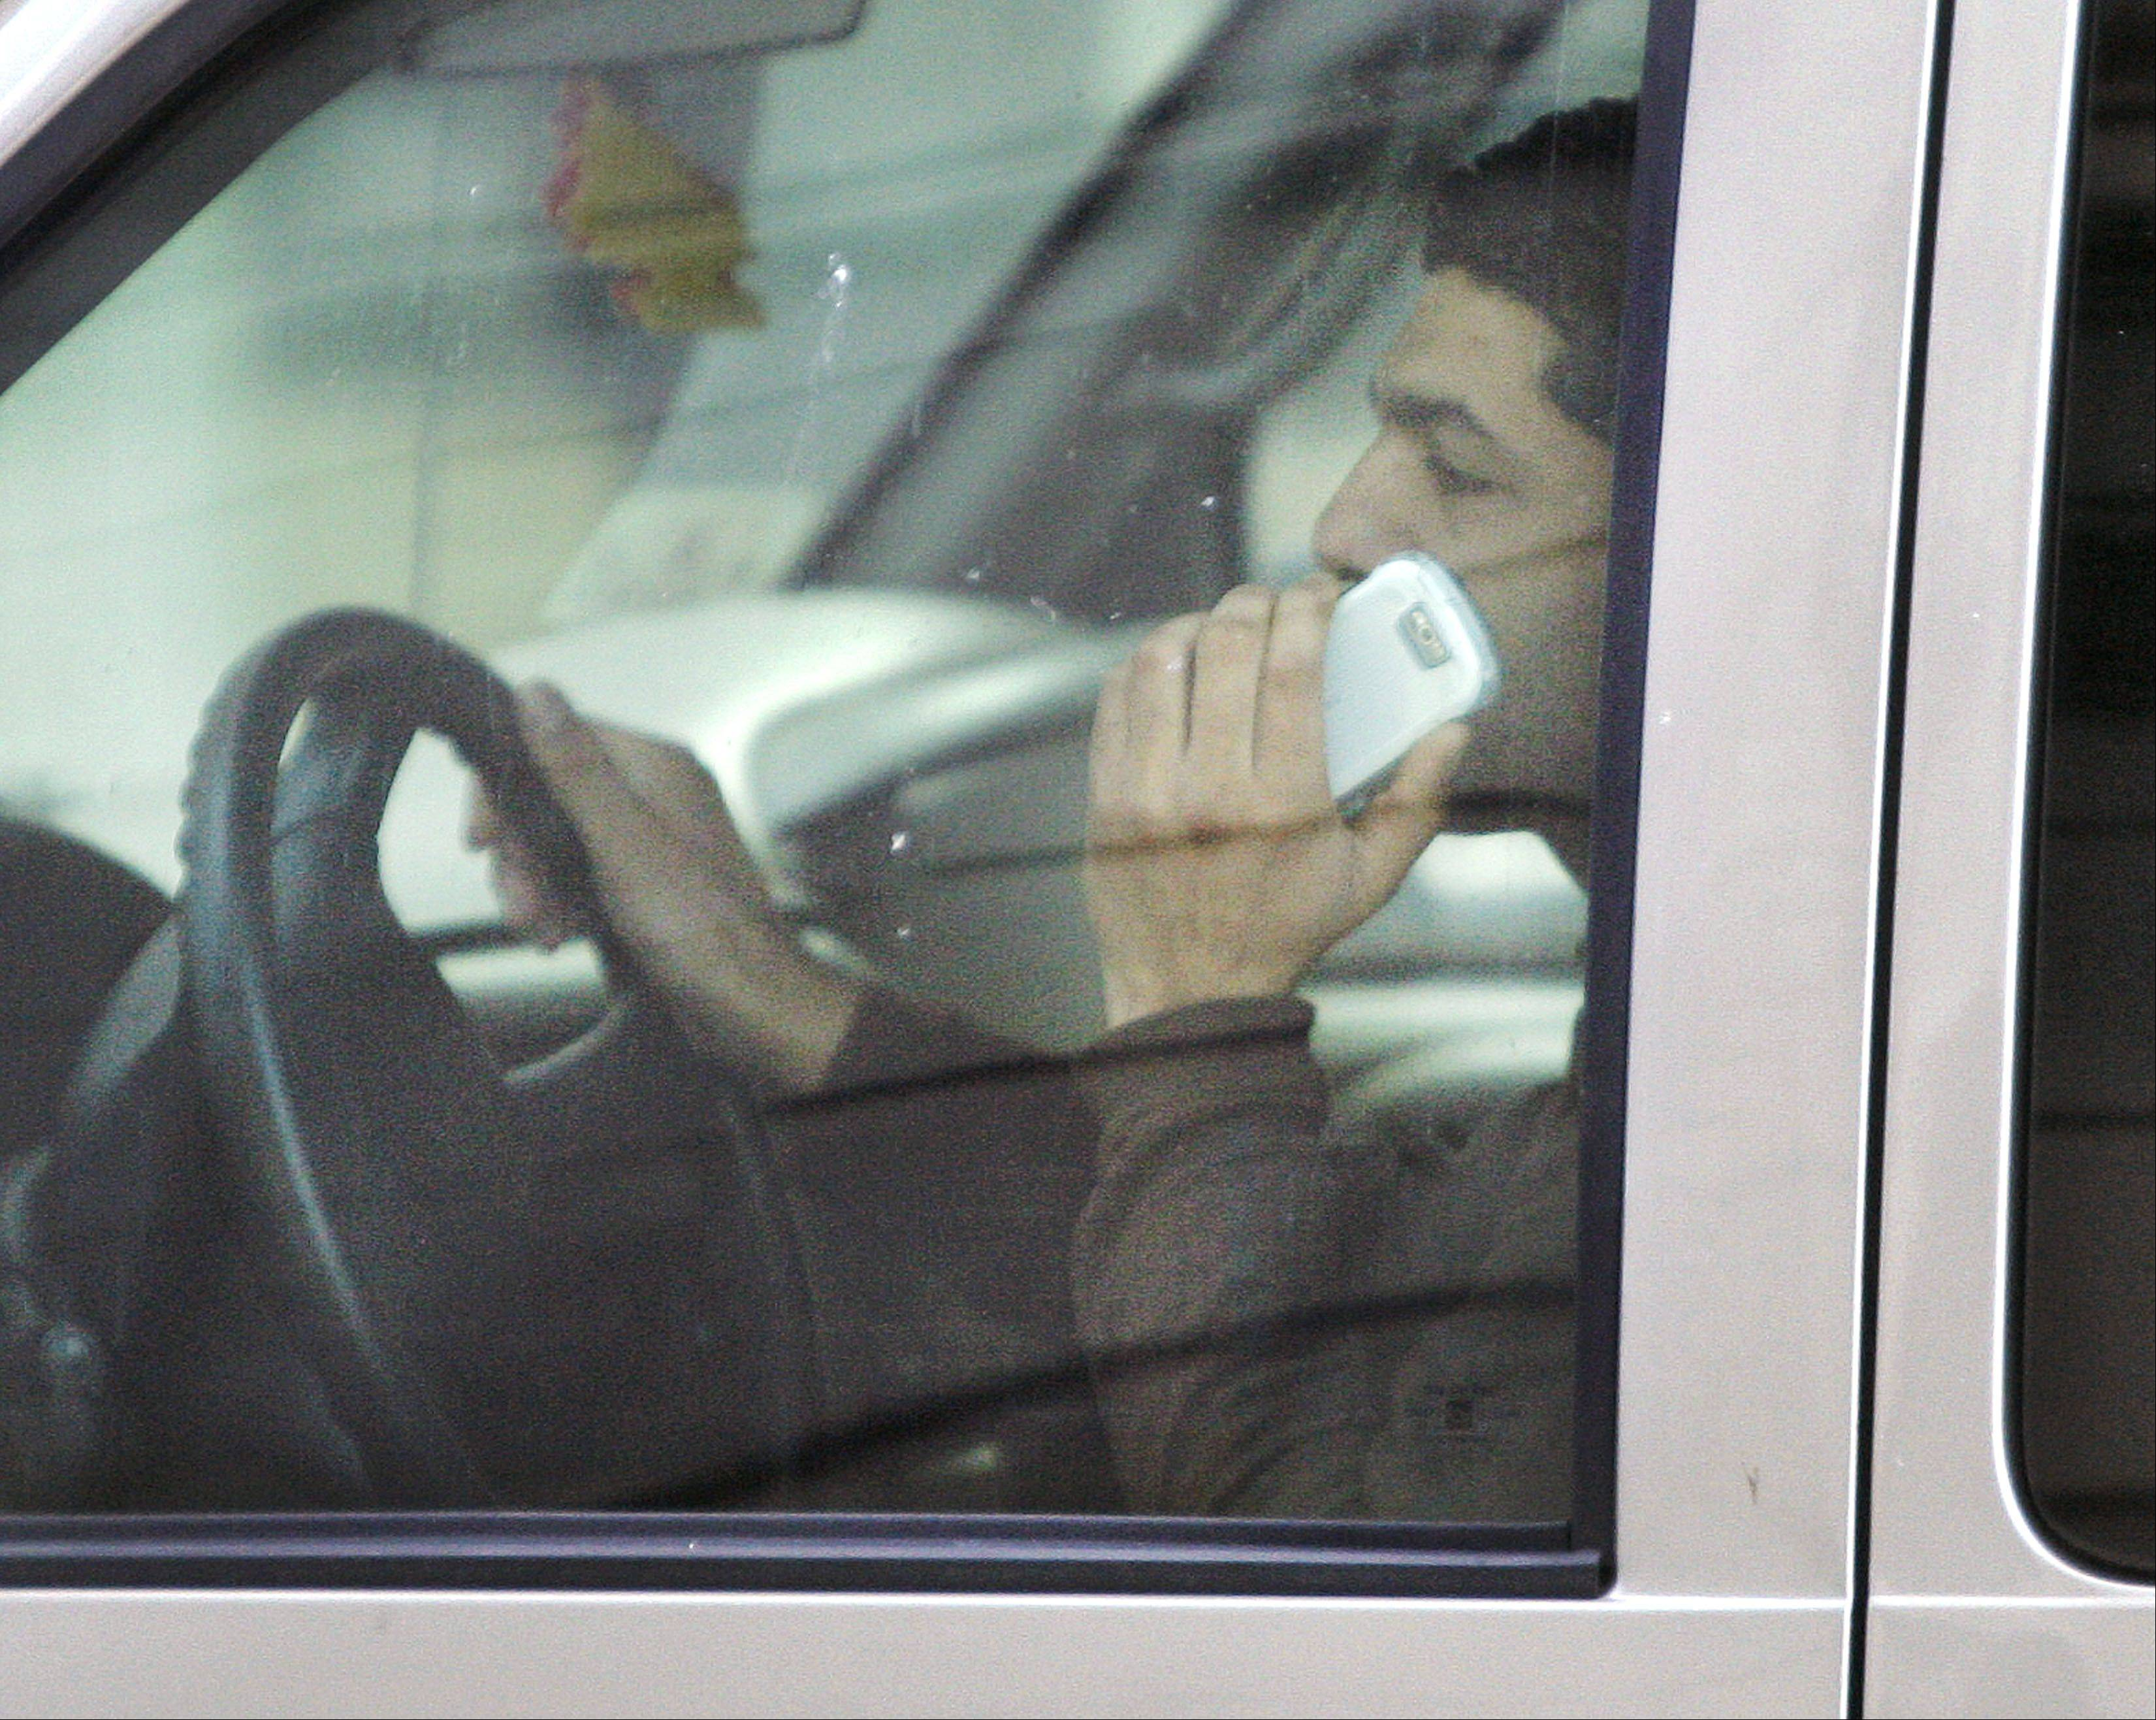 Illinois lawmakers voted Thursday to ban talking on the phone while driving.